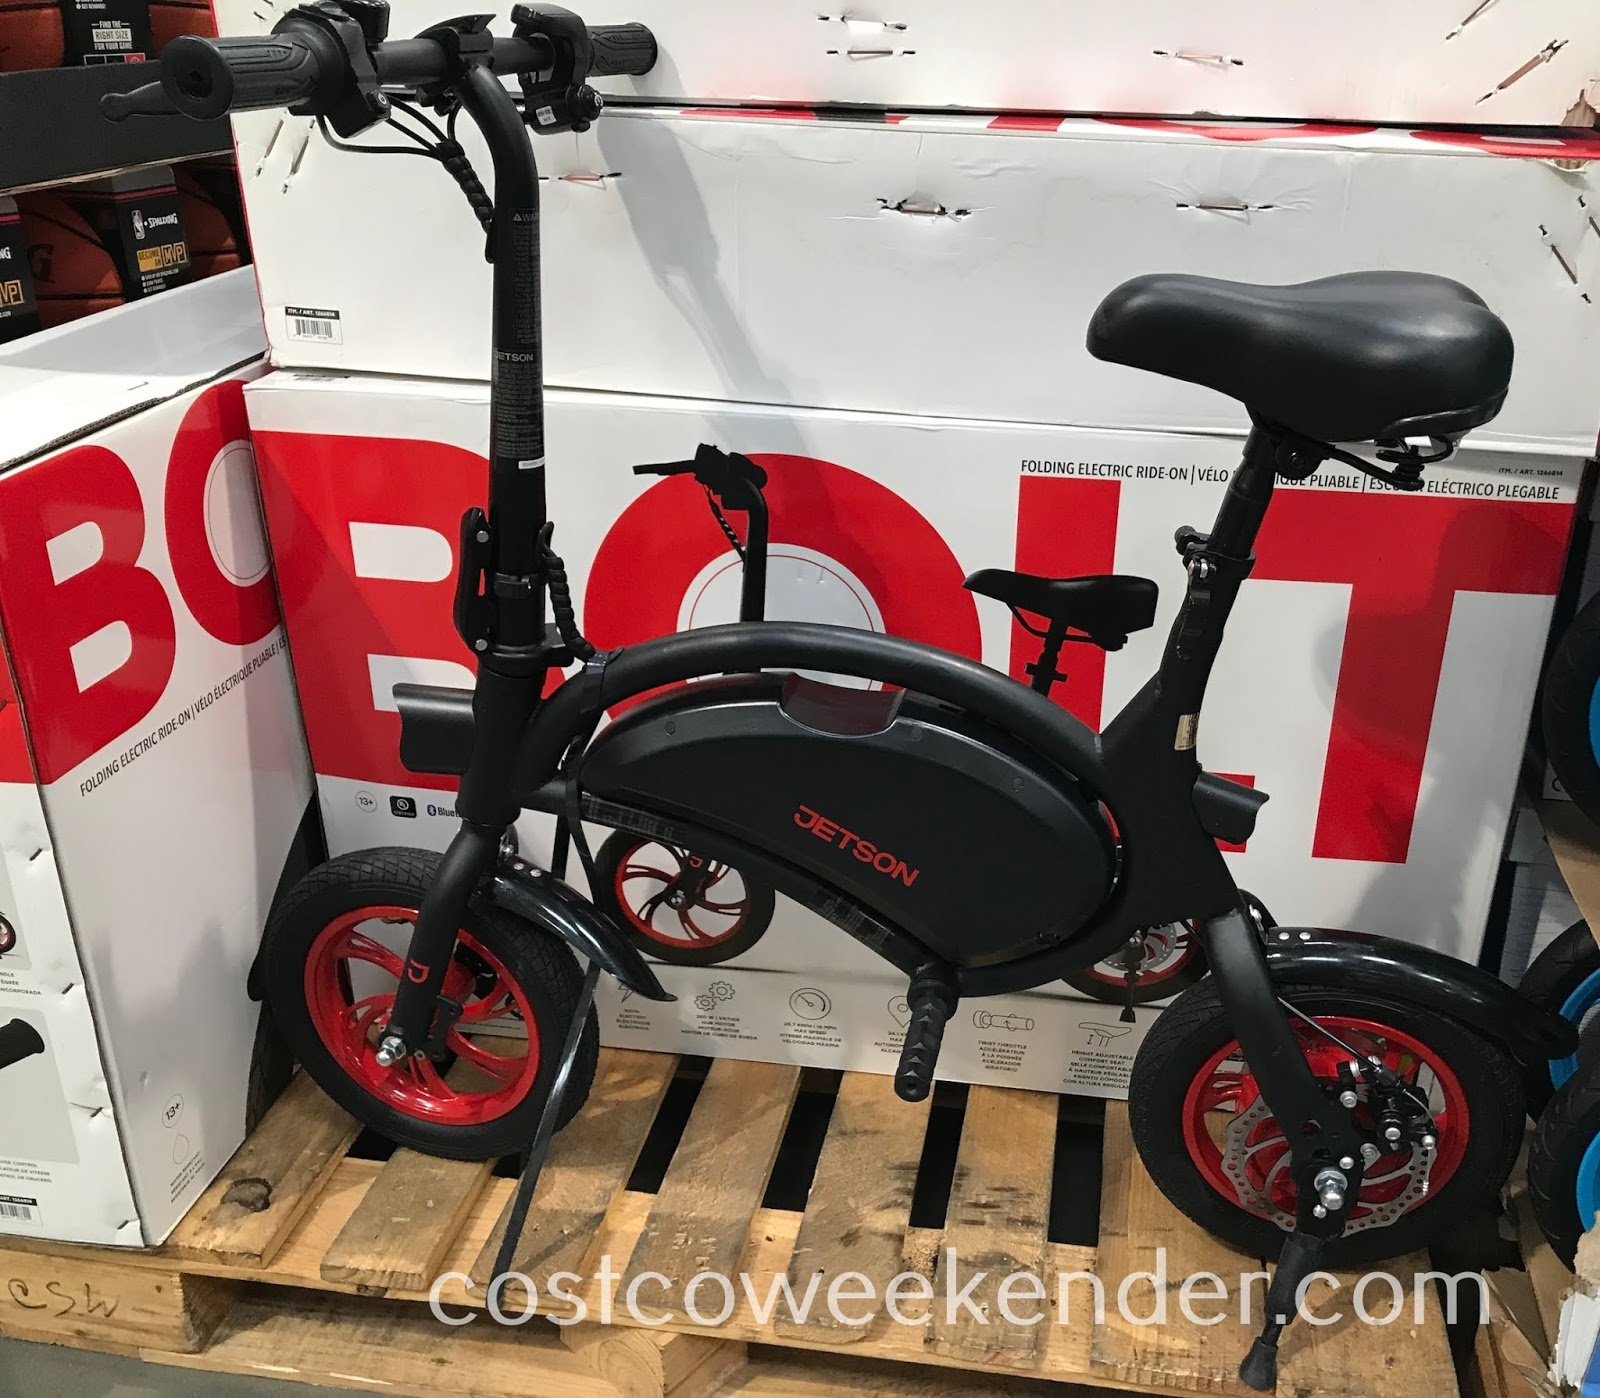 Easily commute to work or go around town with the Jetson Bolt Folding Electric Ride-On